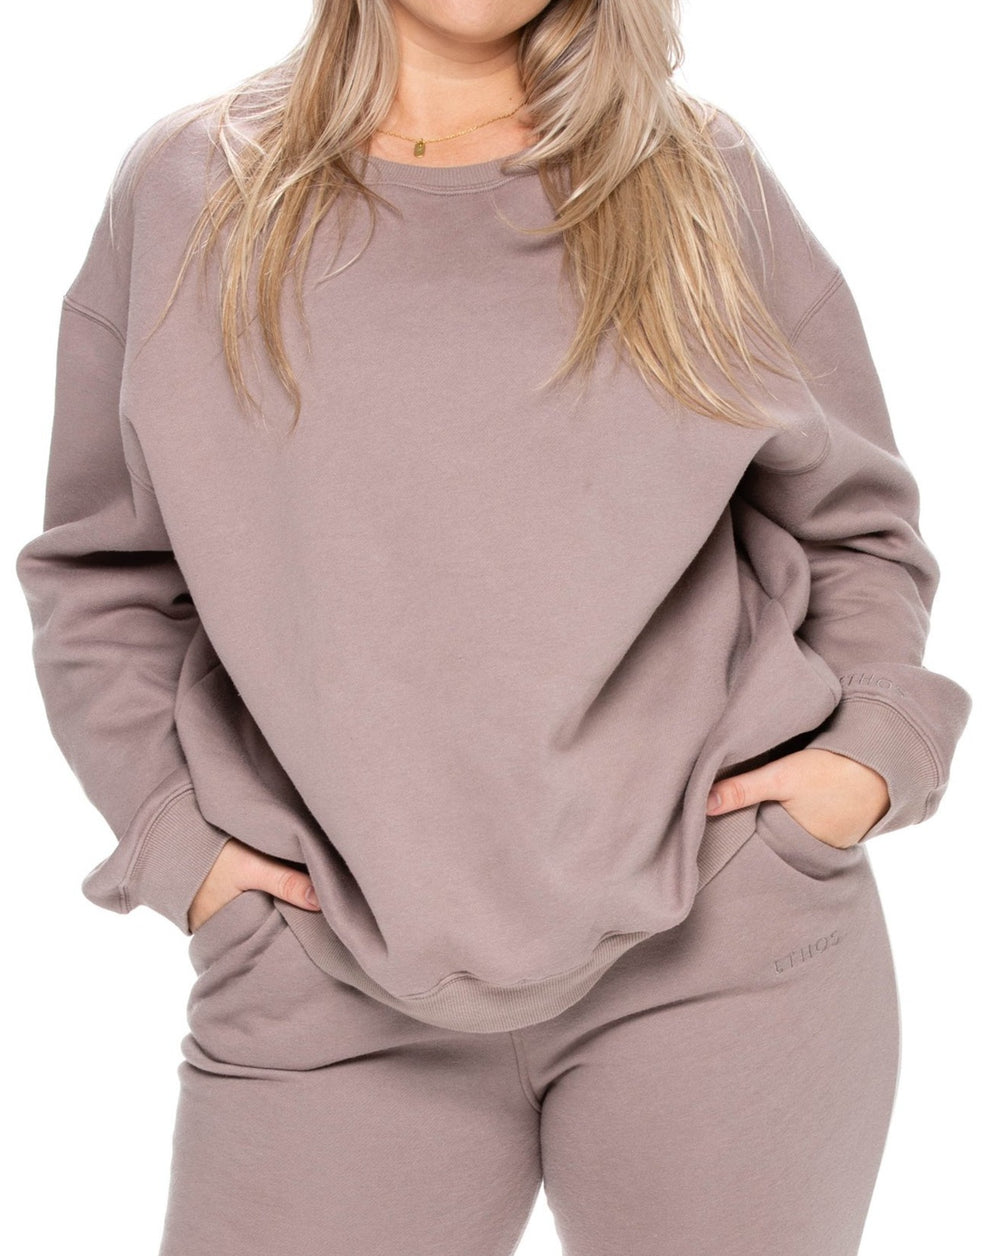 Oversized Sweats - Pebble